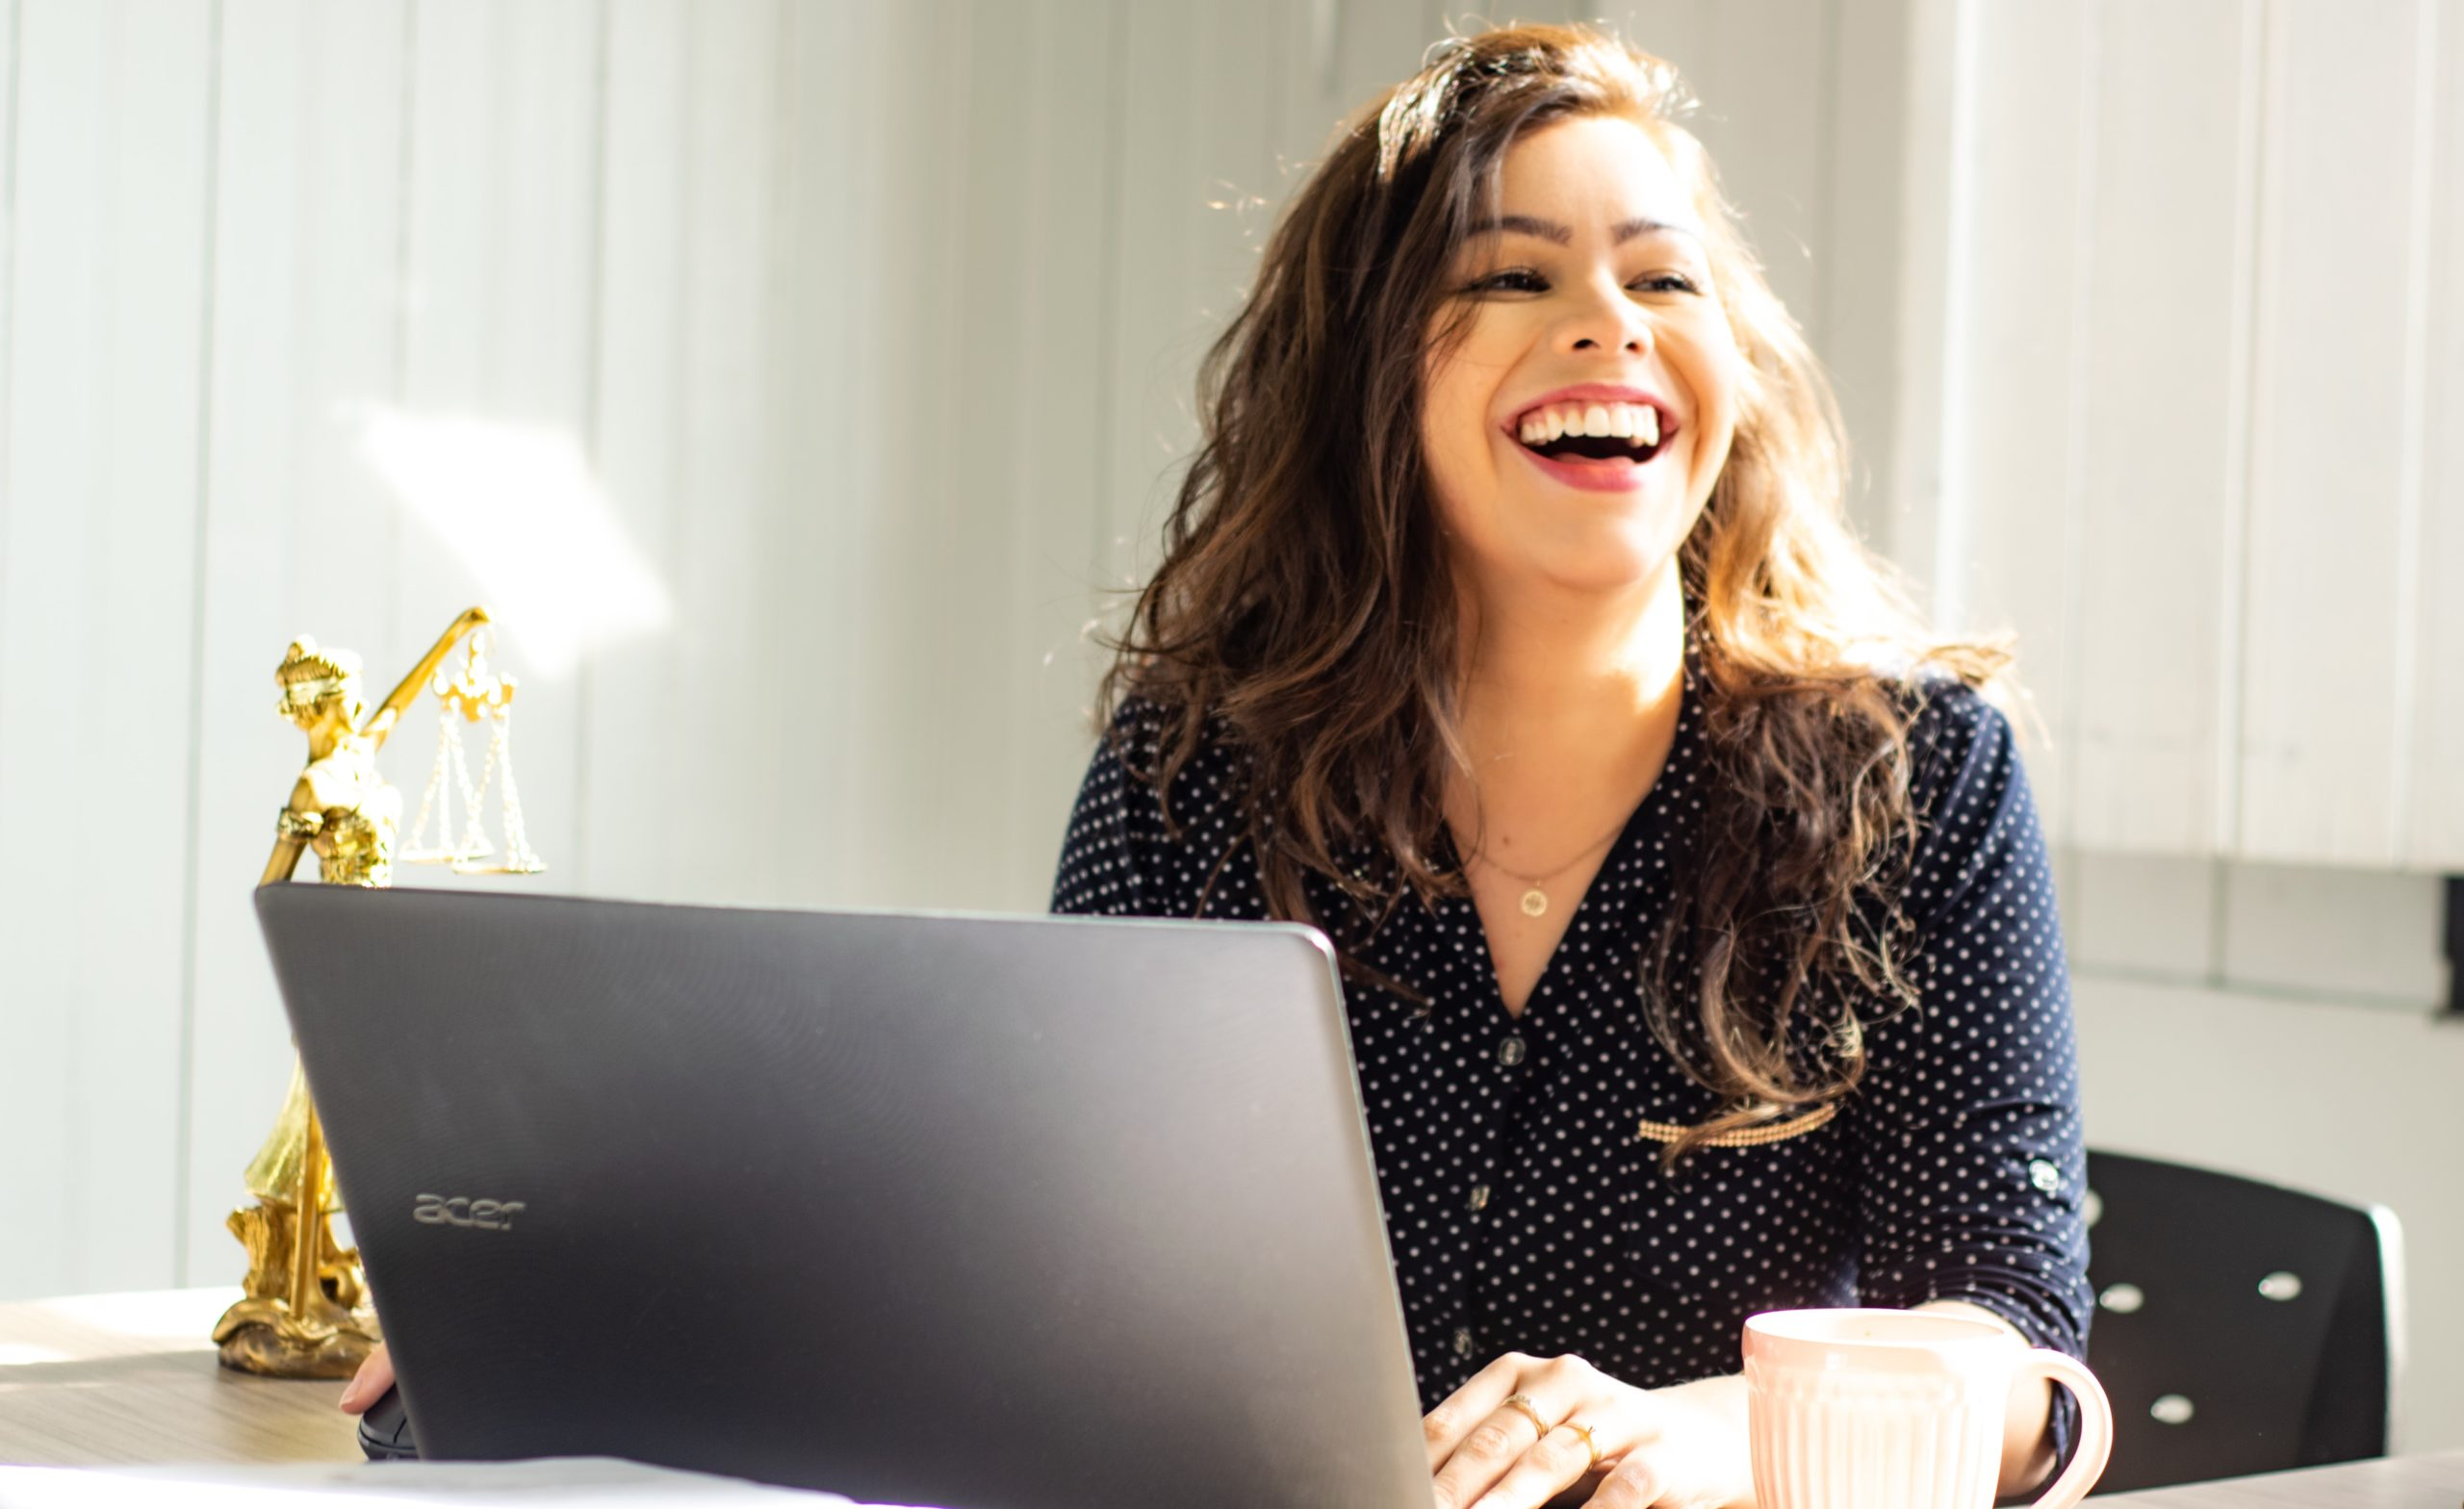 Female founder laughing